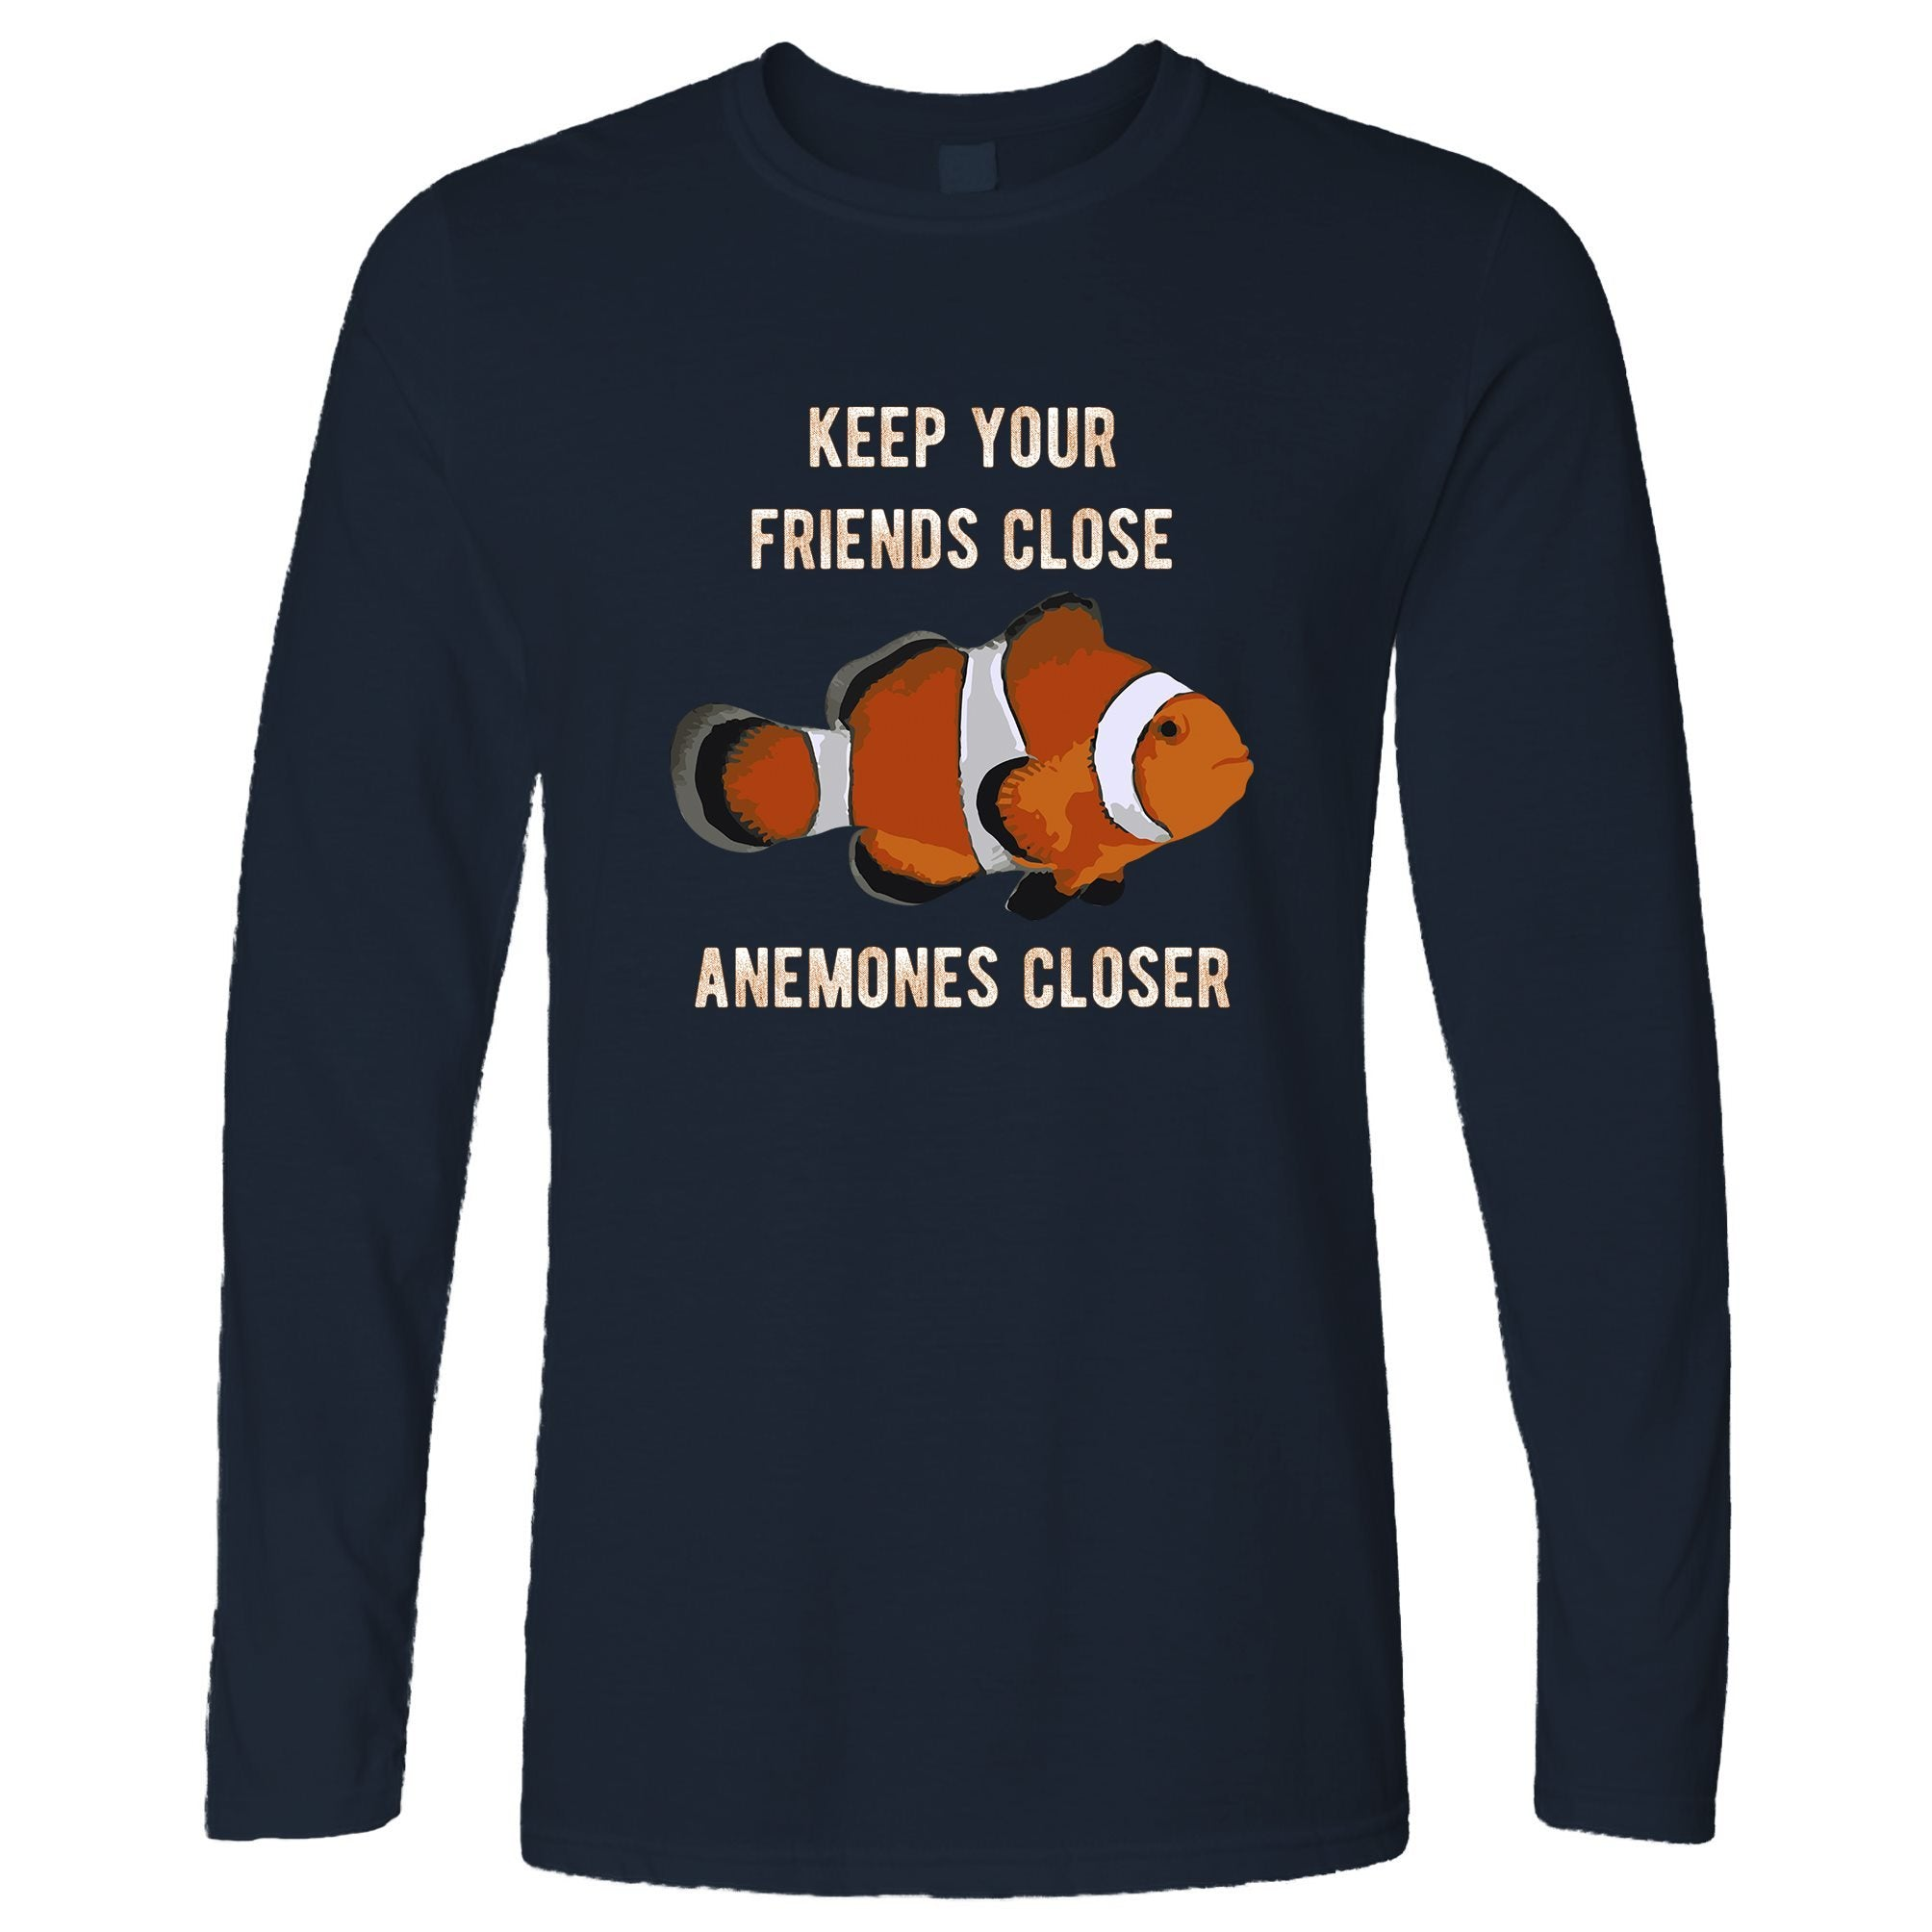 Joke Clownfish Long Sleeve Keep Your Friends Close T-Shirt